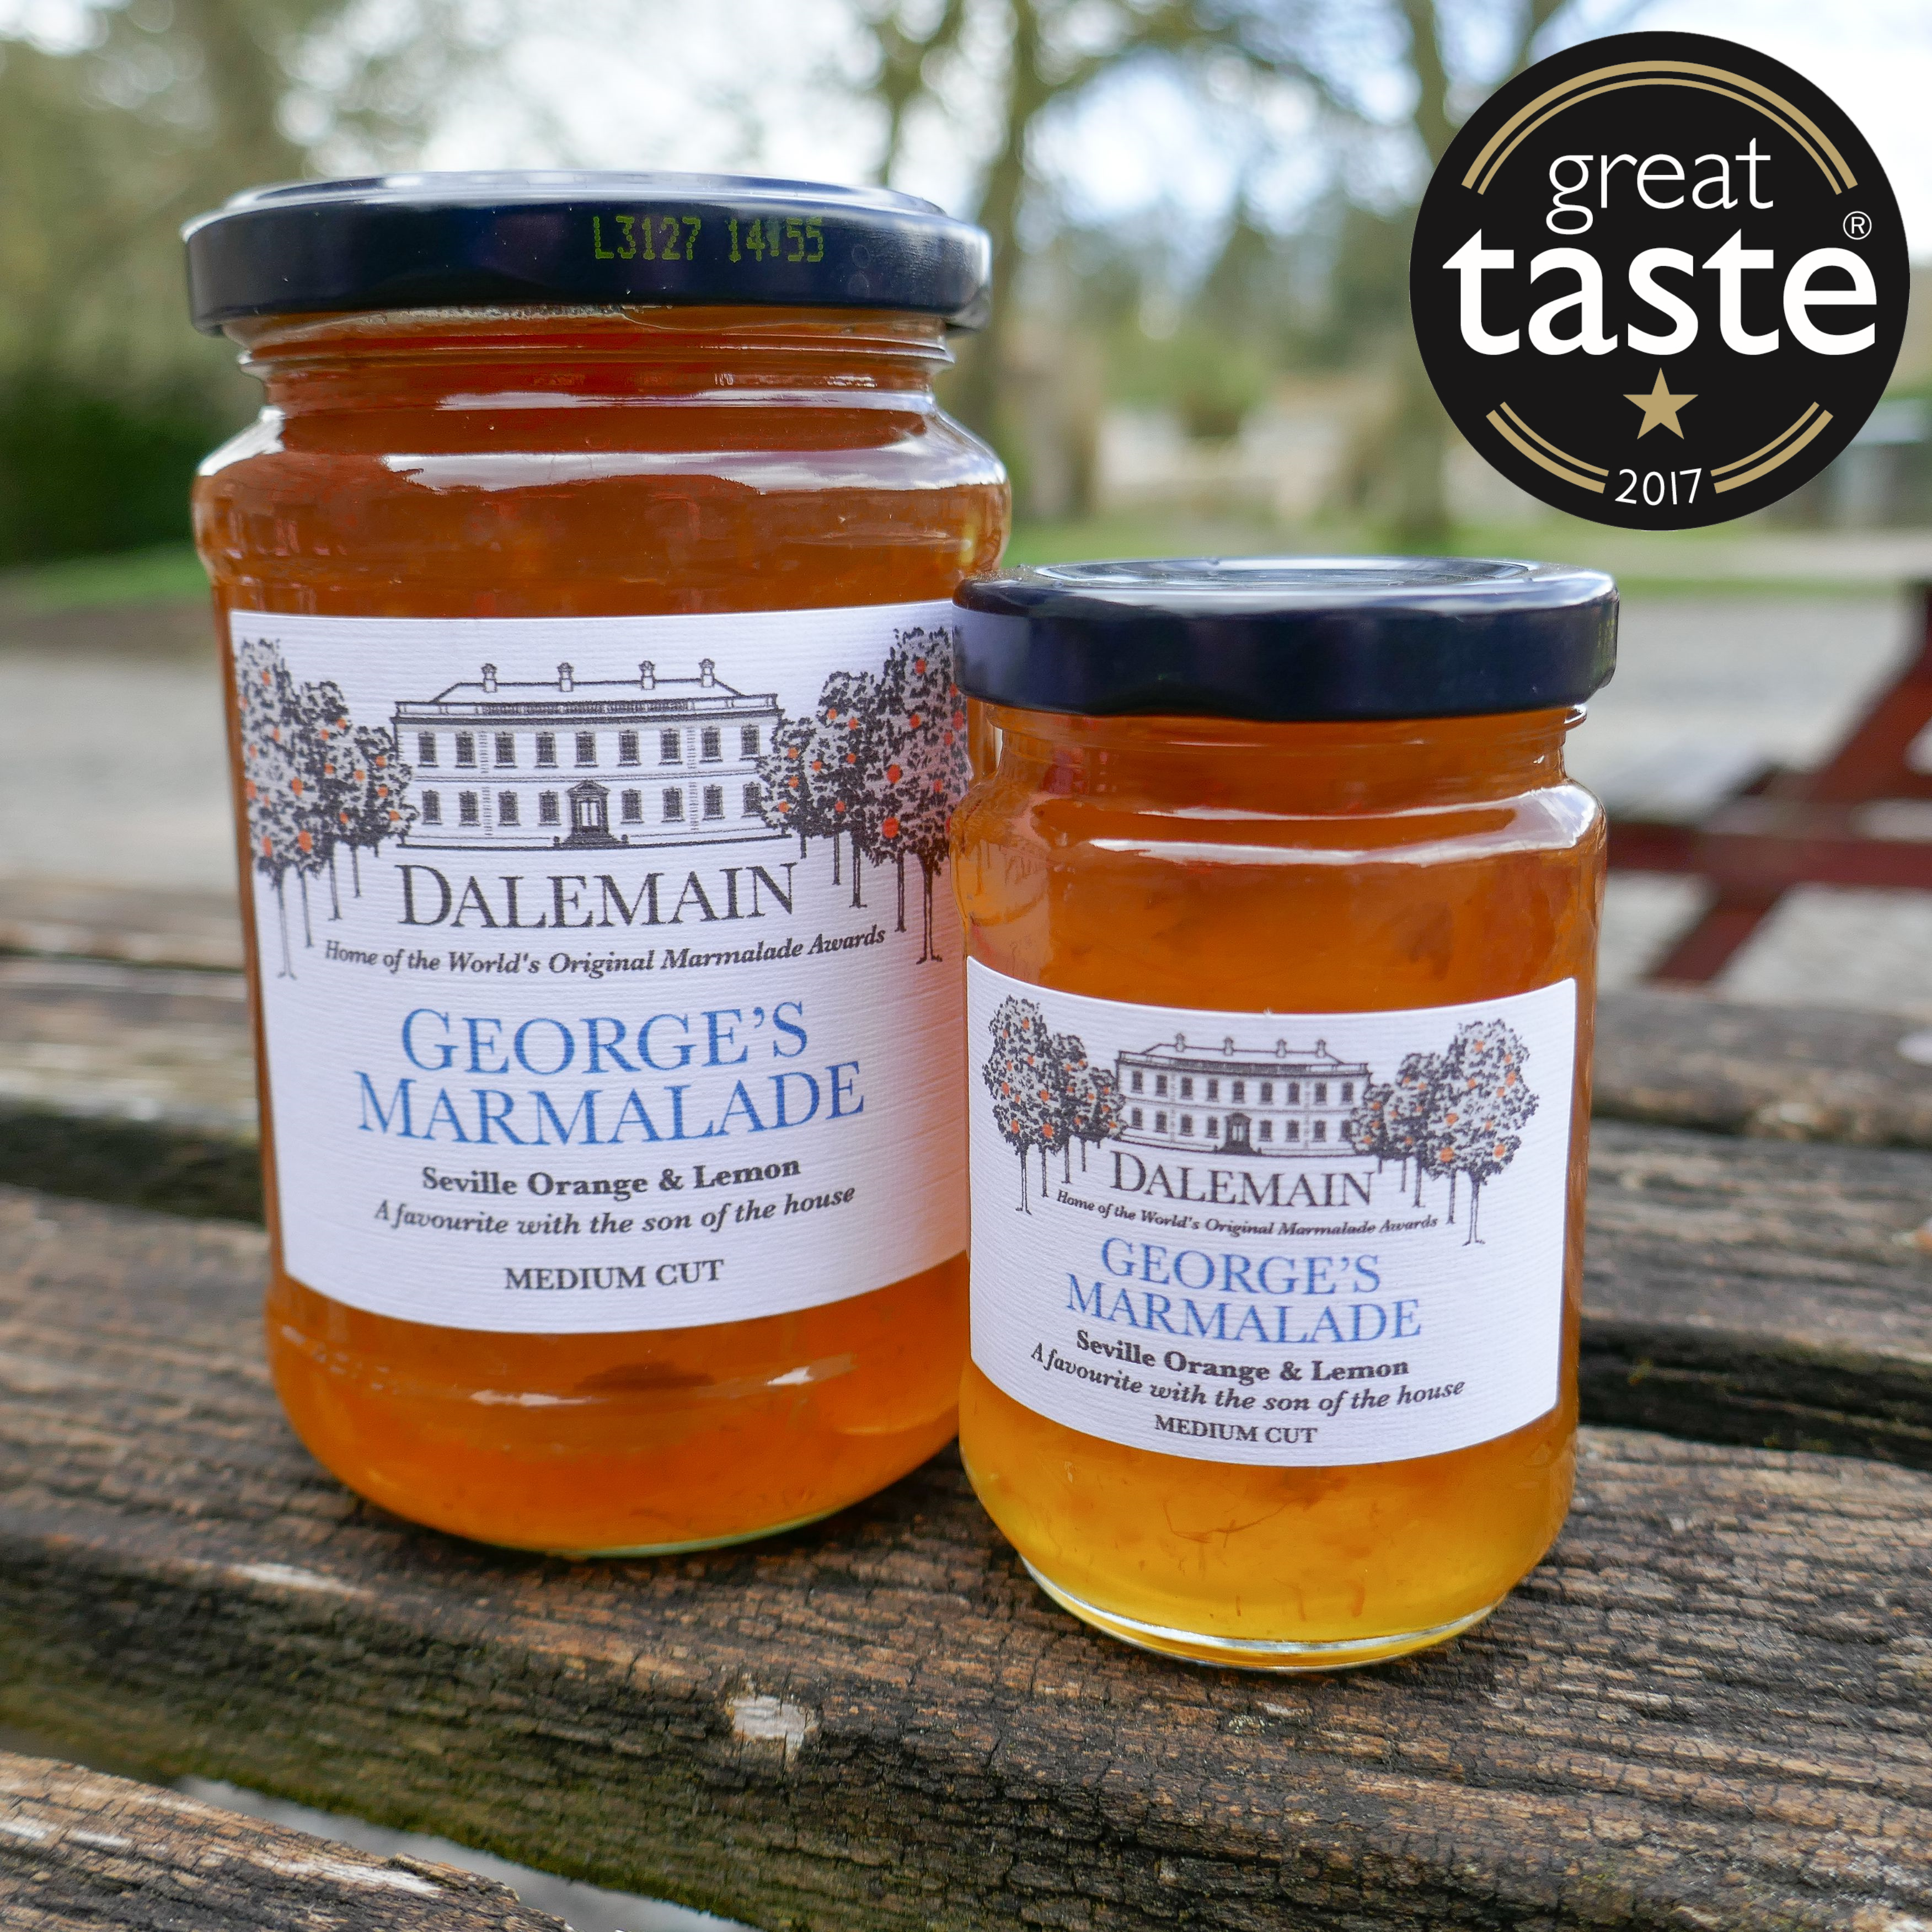 Dalemain George's Marmalade